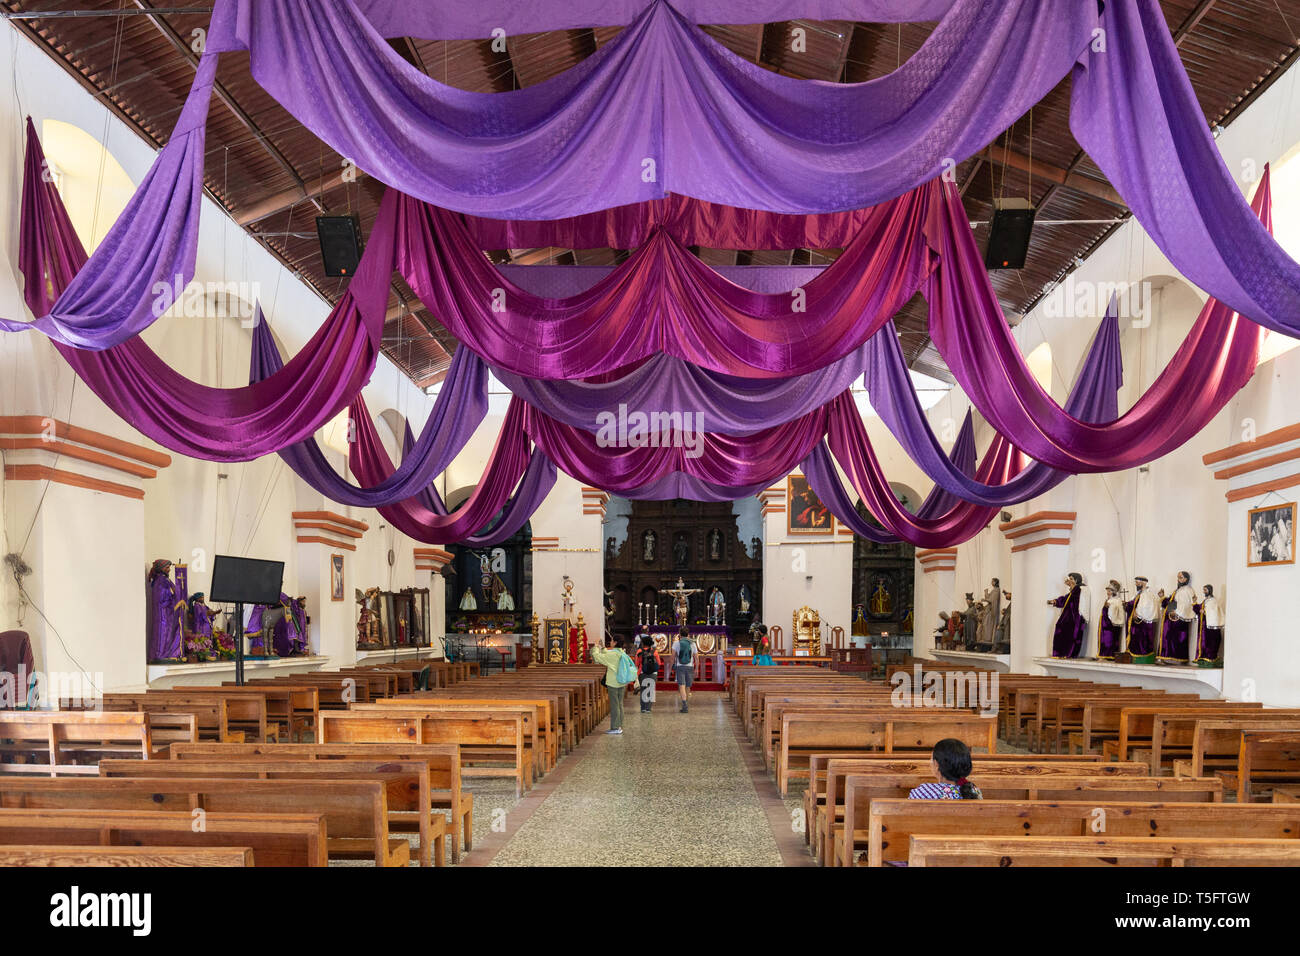 Colourful Nave in Holy Week, the interior of St James the Apostle Church, Santiago Atitlan , Guatemala, Central America - Stock Image